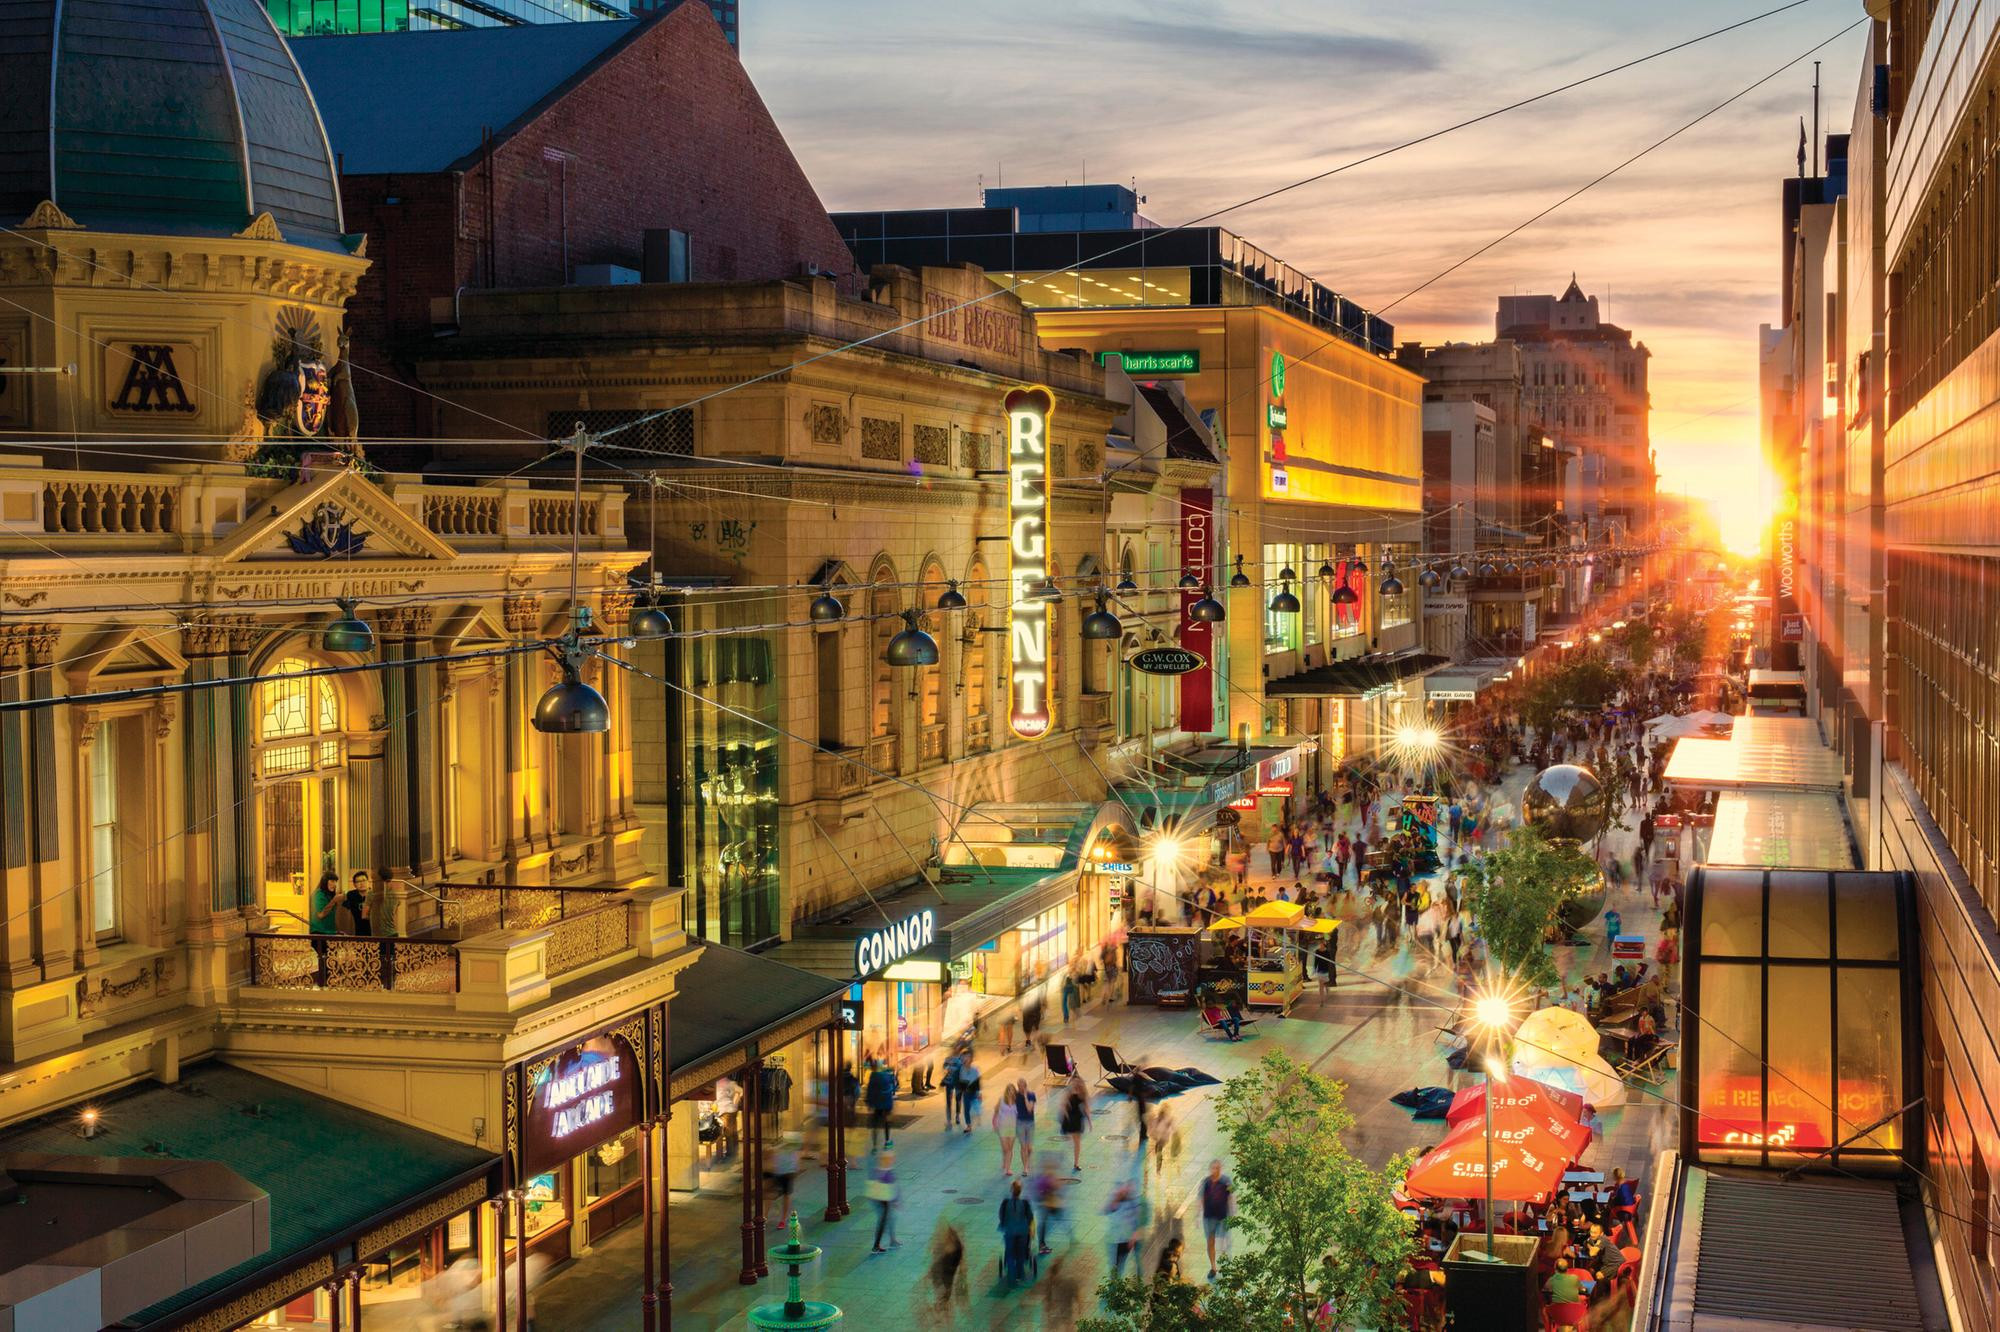 Adelaide Commercial Property Set To Thrive In Covid Free Bubble